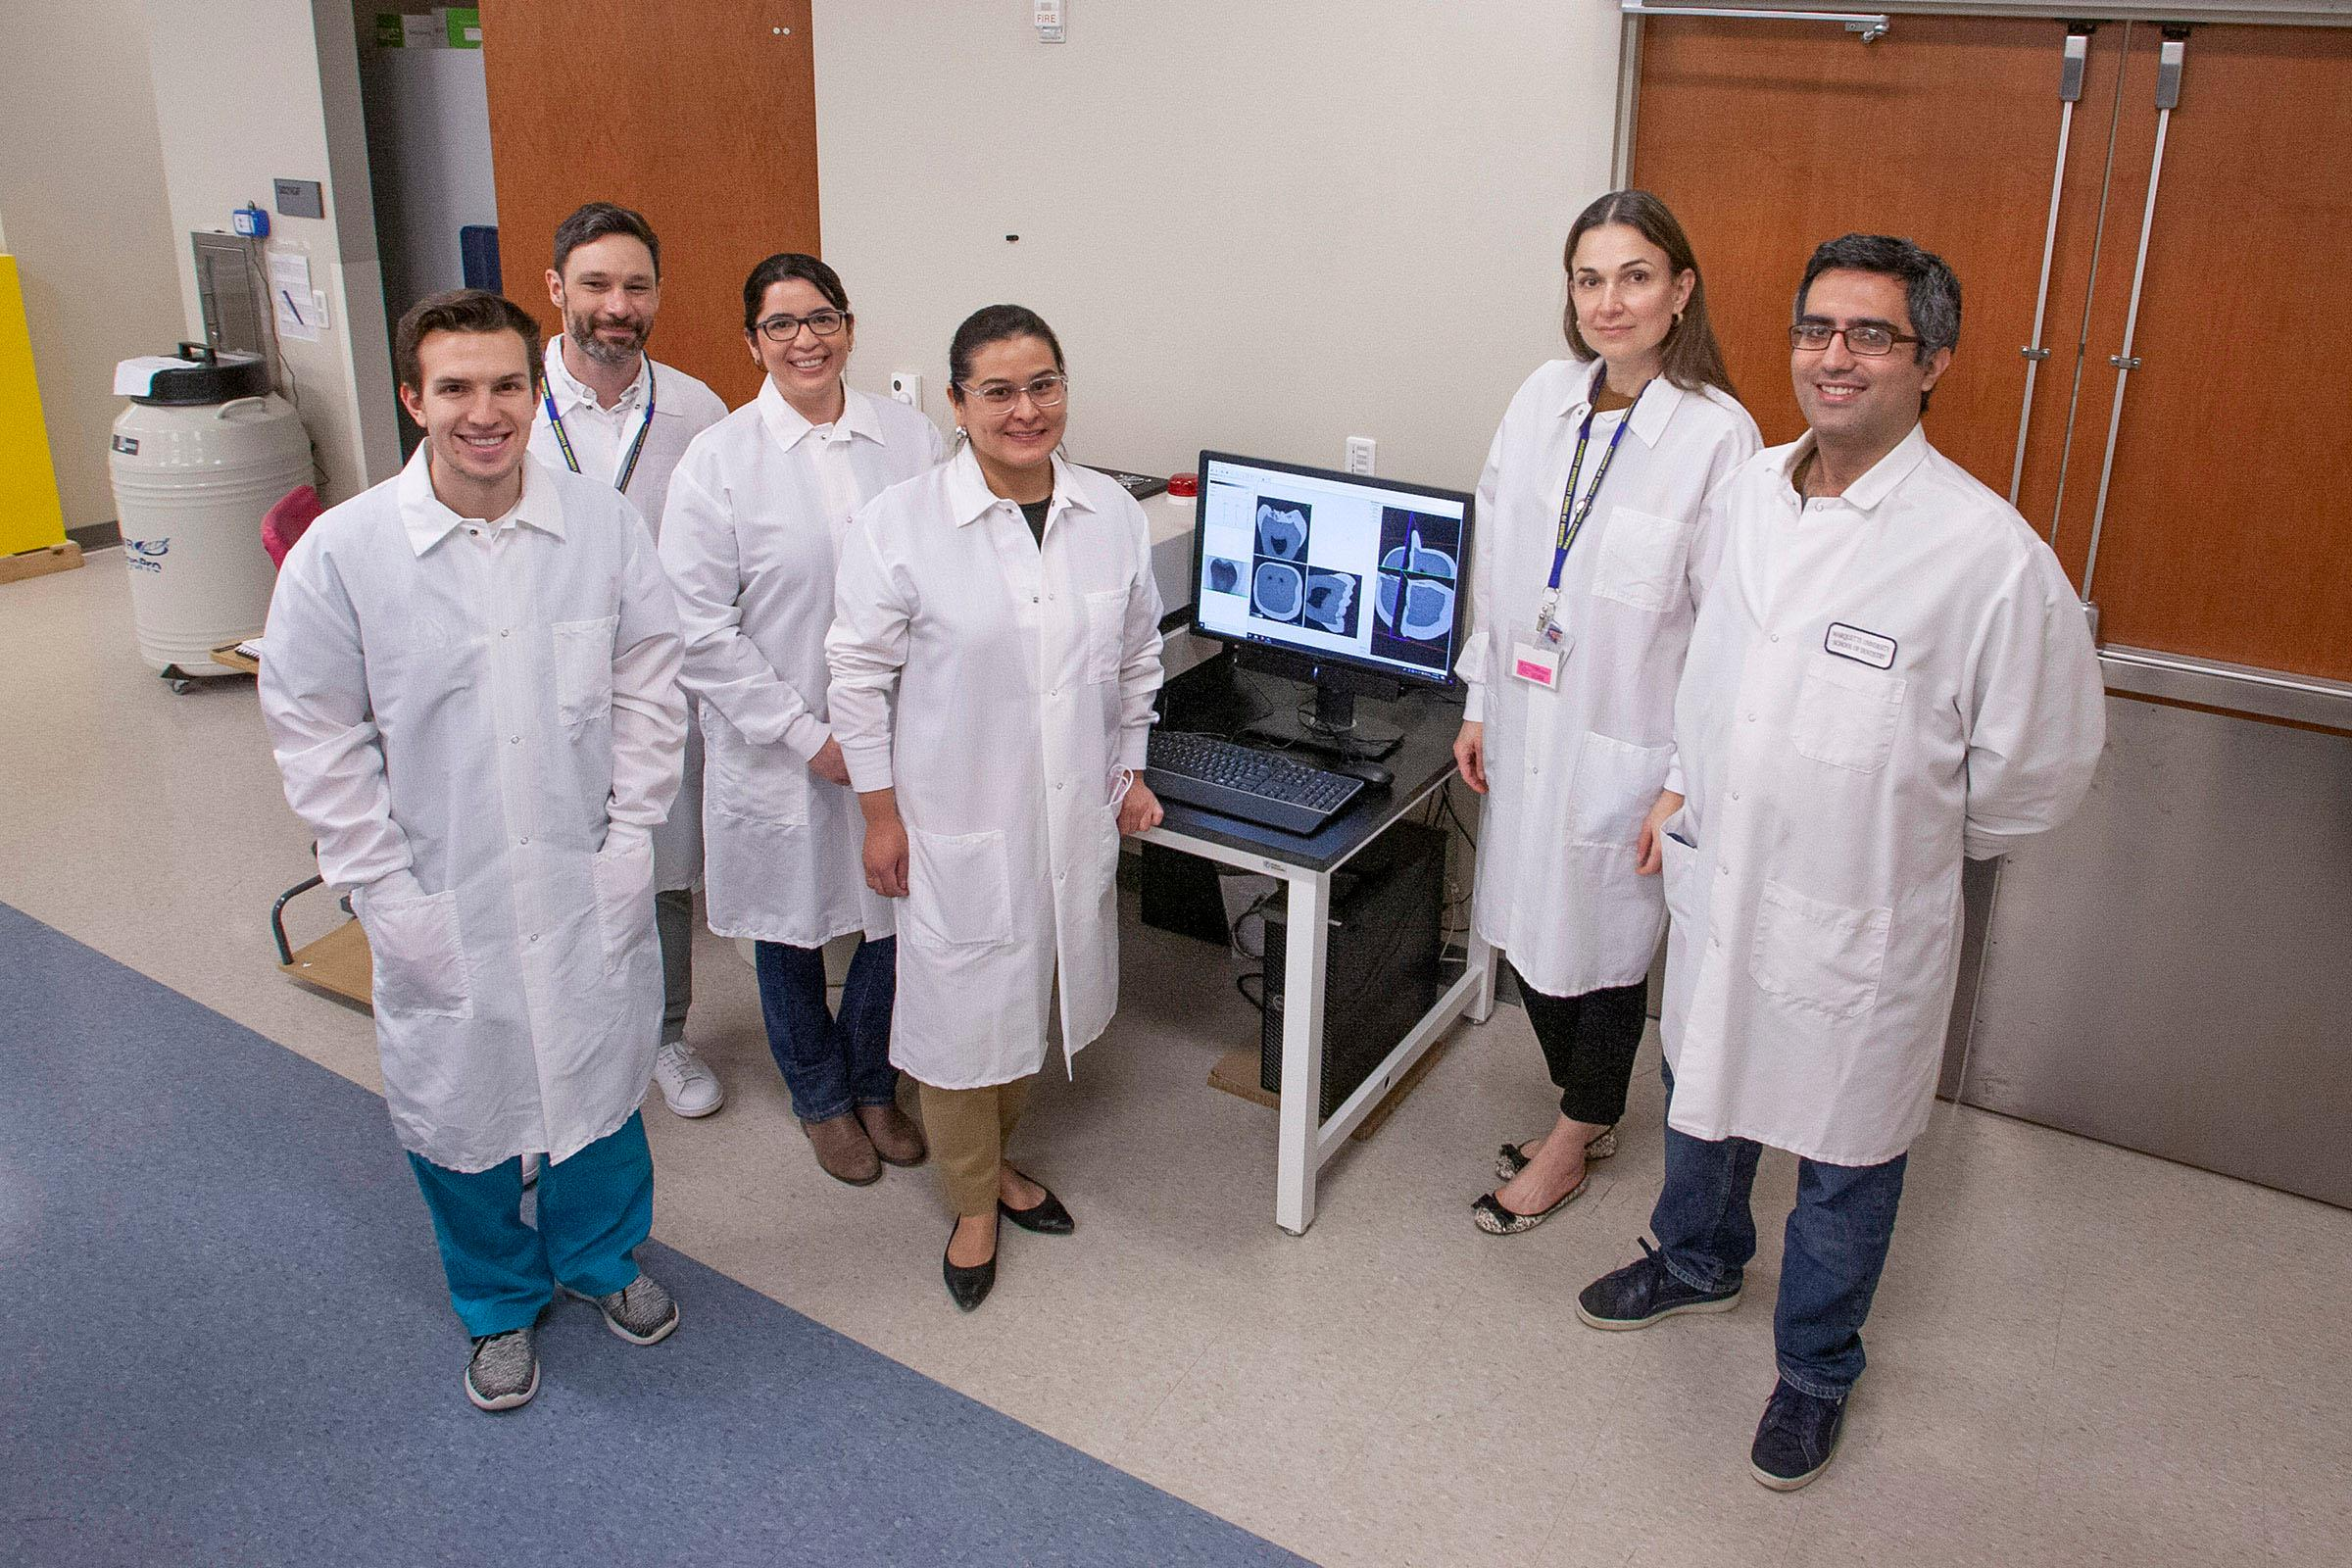 Bedran-Russo Research Group